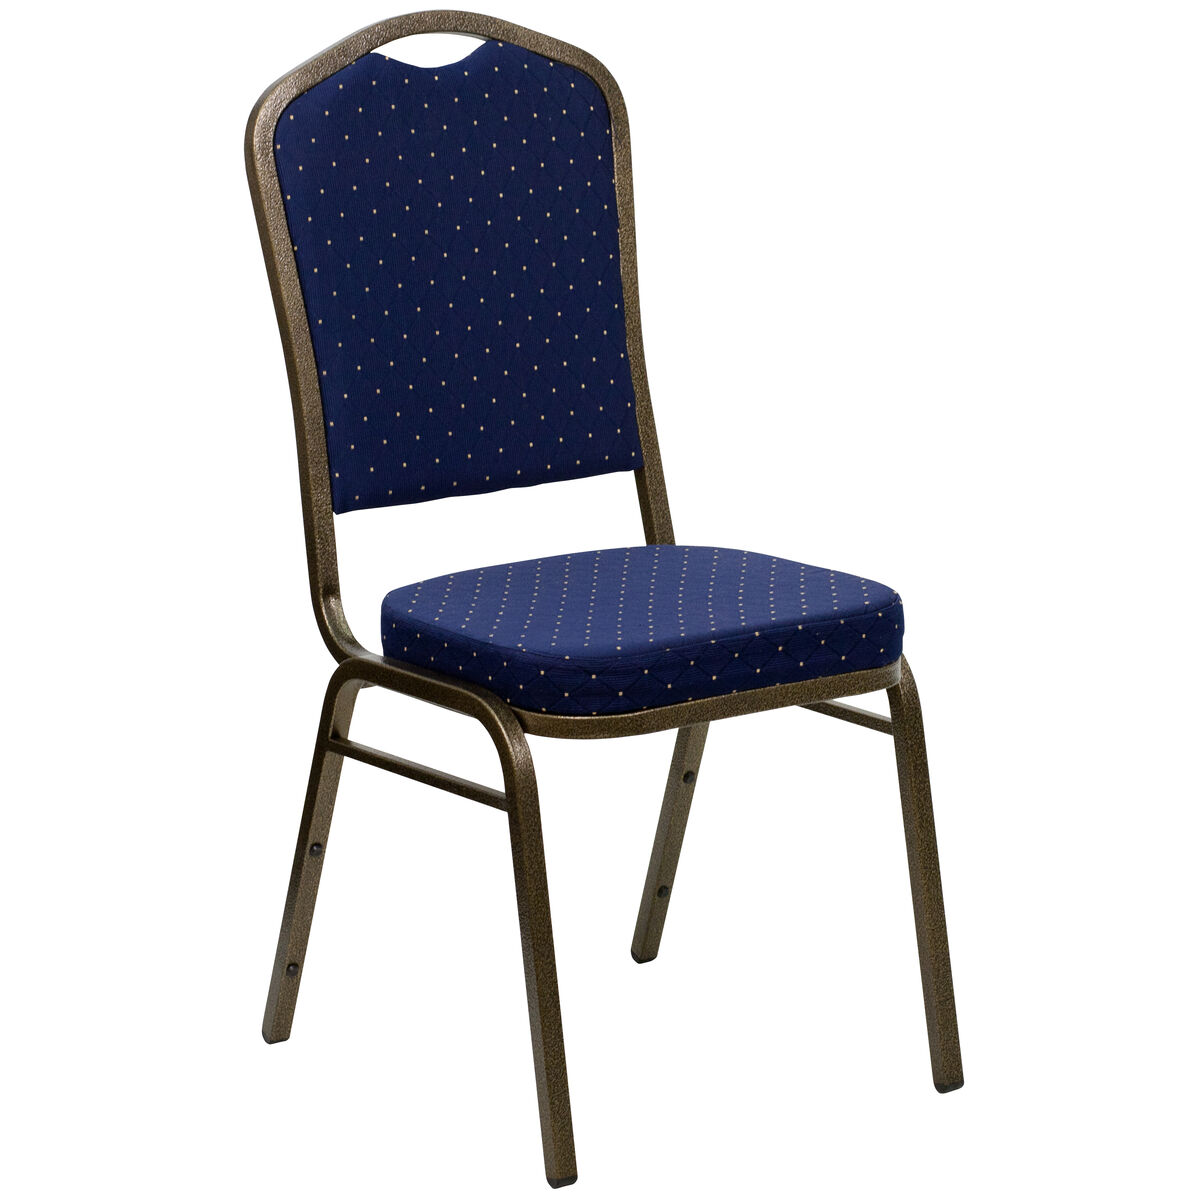 Crown Back Stacking Banquet Chair in Navy Blue Dot Patterned Fabric - Gold Frame